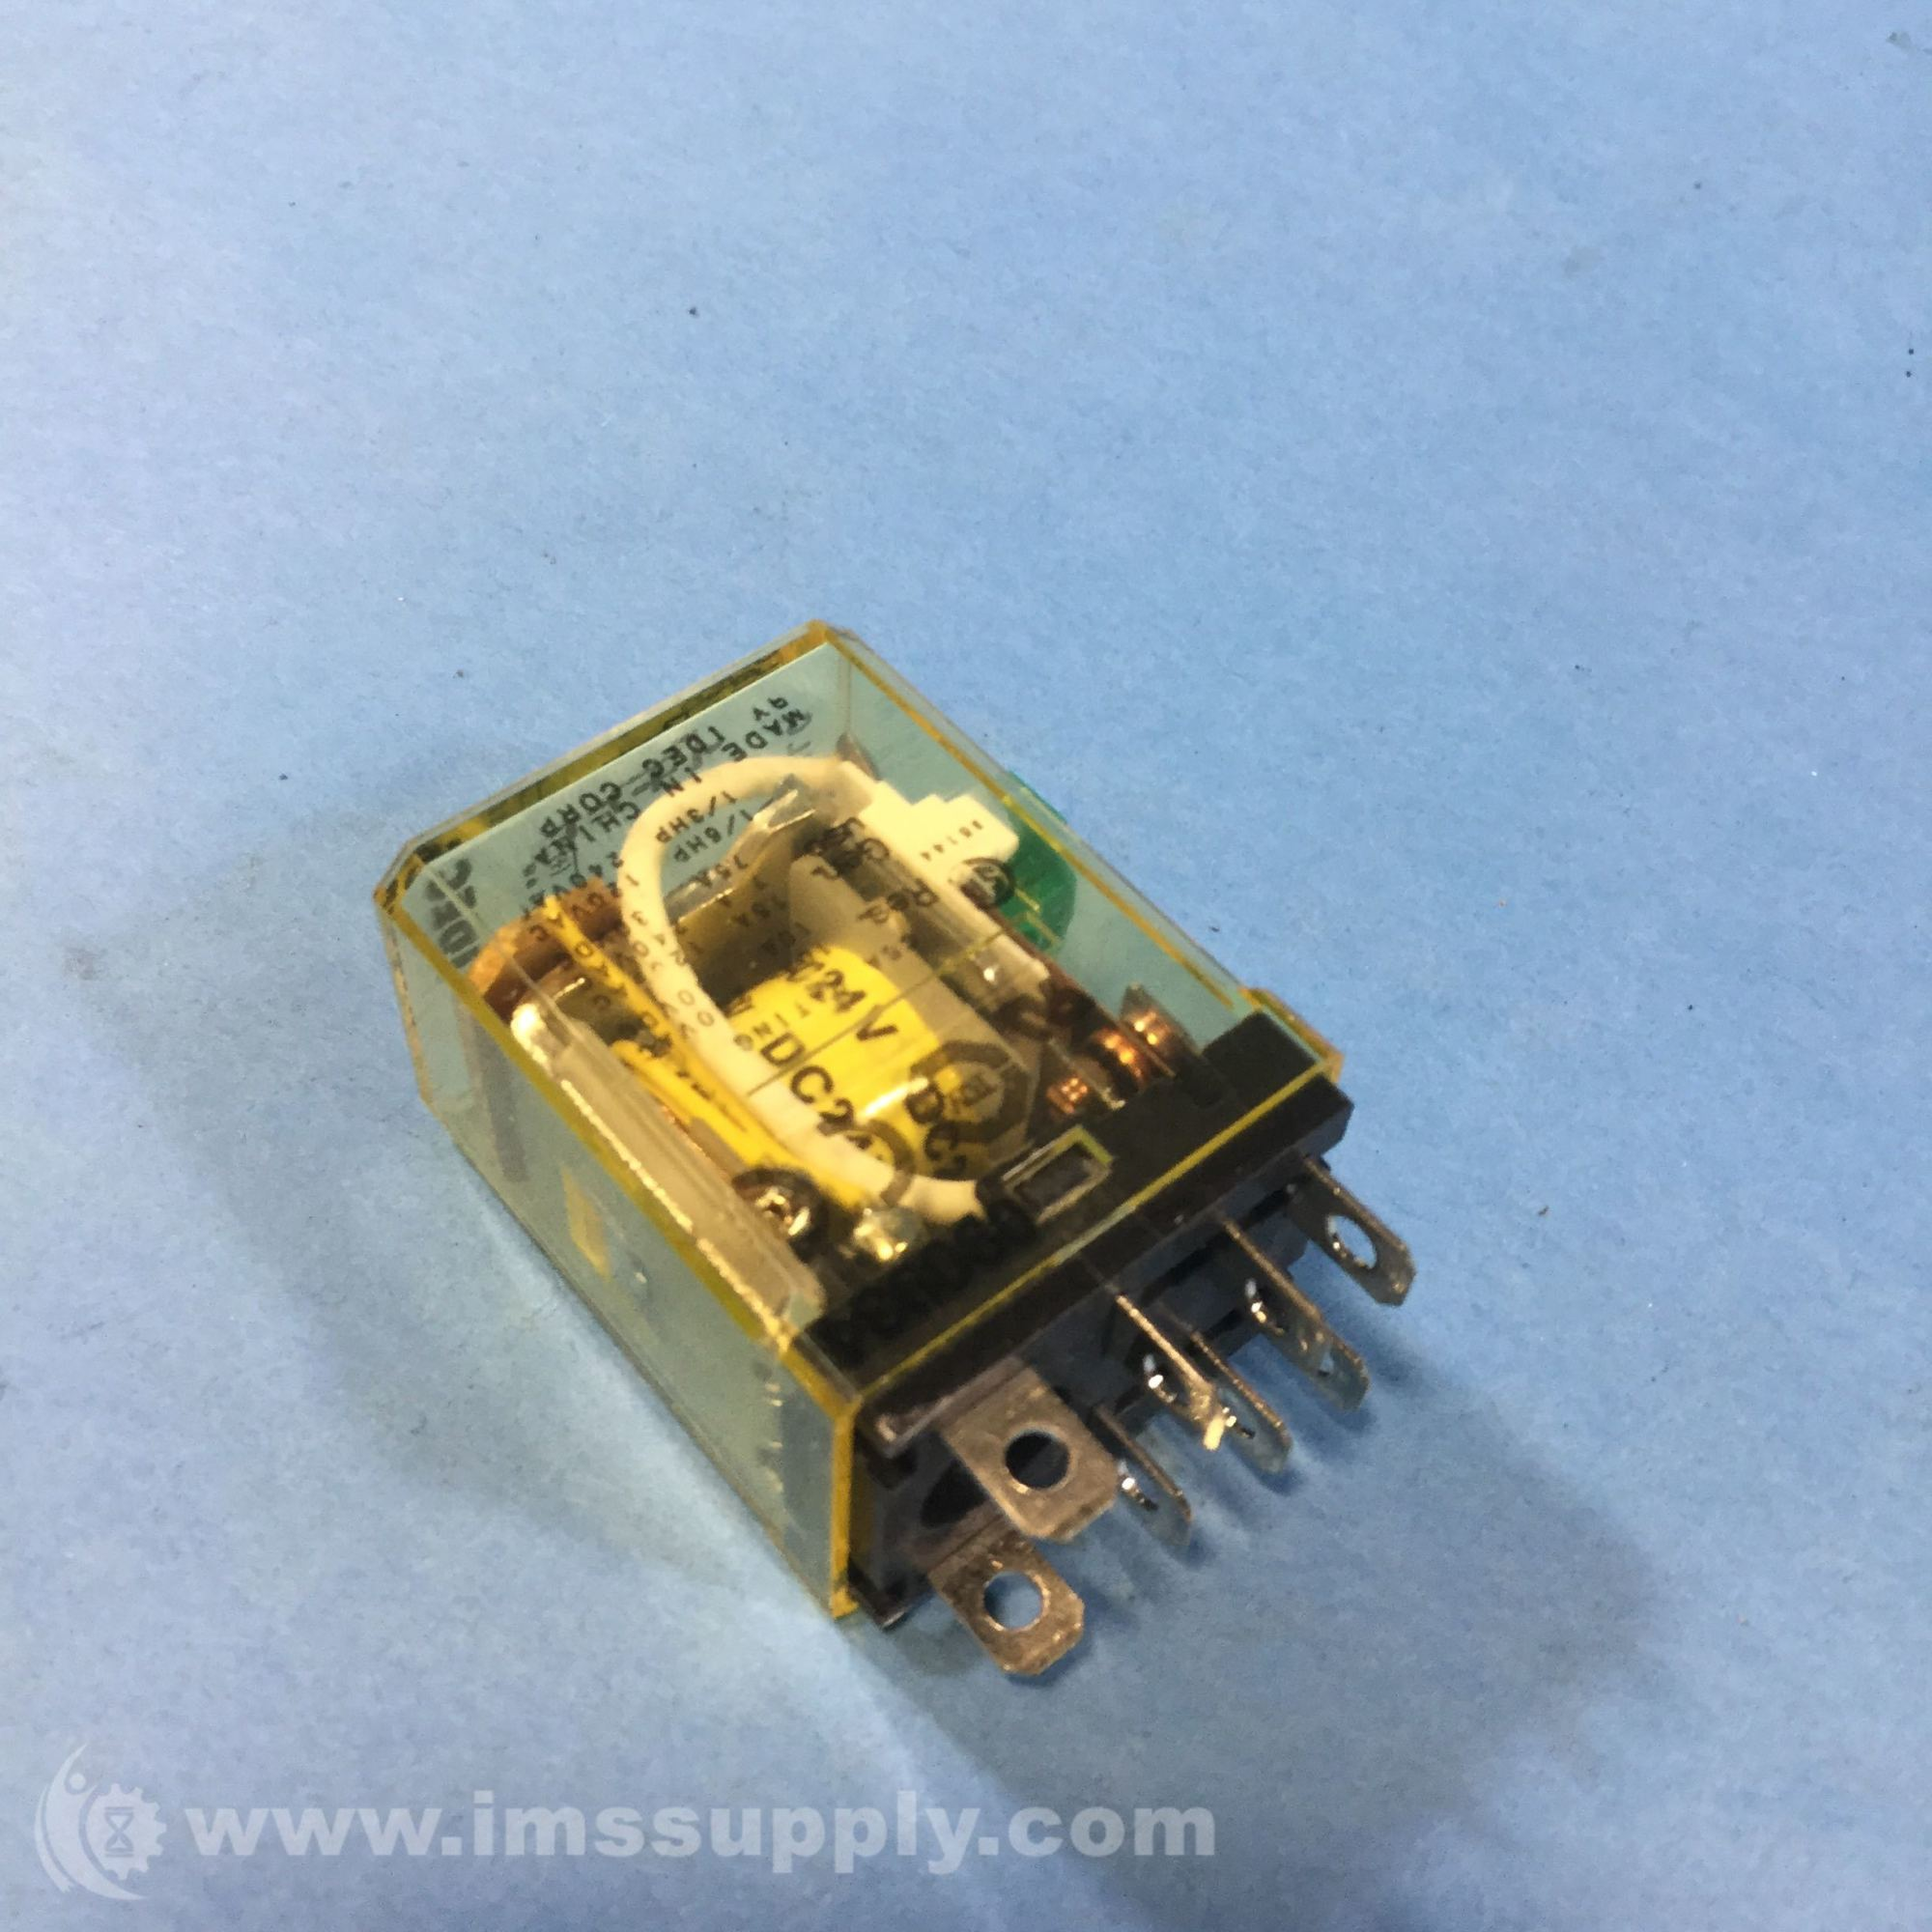 hight resolution of lot of 5 general purpose relays electrical equipment supplies idec rh2b ul relays dc24v